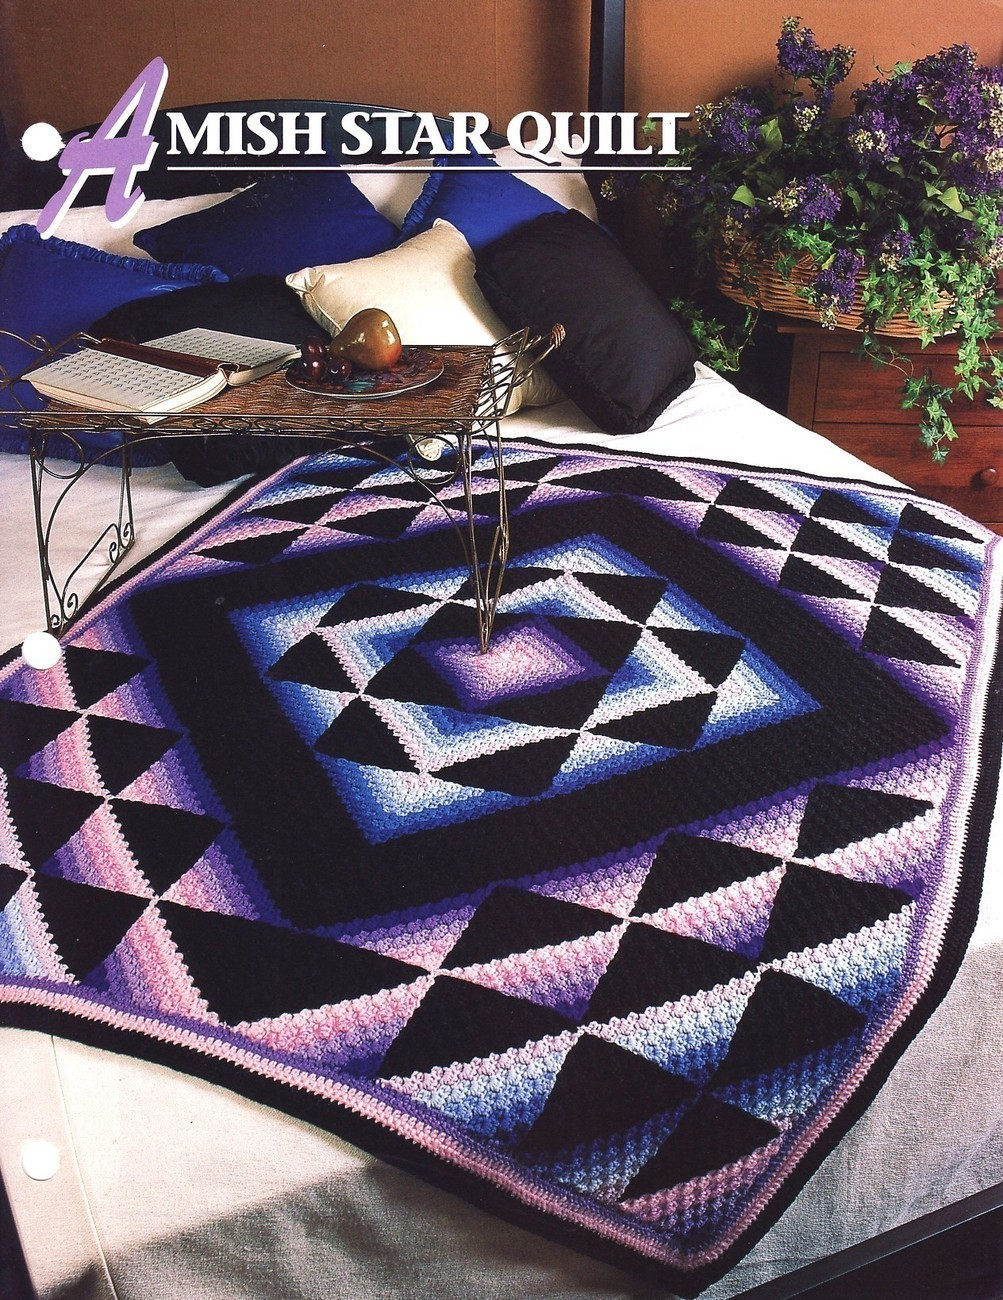 ... Quilt Crochet Pattern Annies Crochet Quilt & Afghan Club Blanket